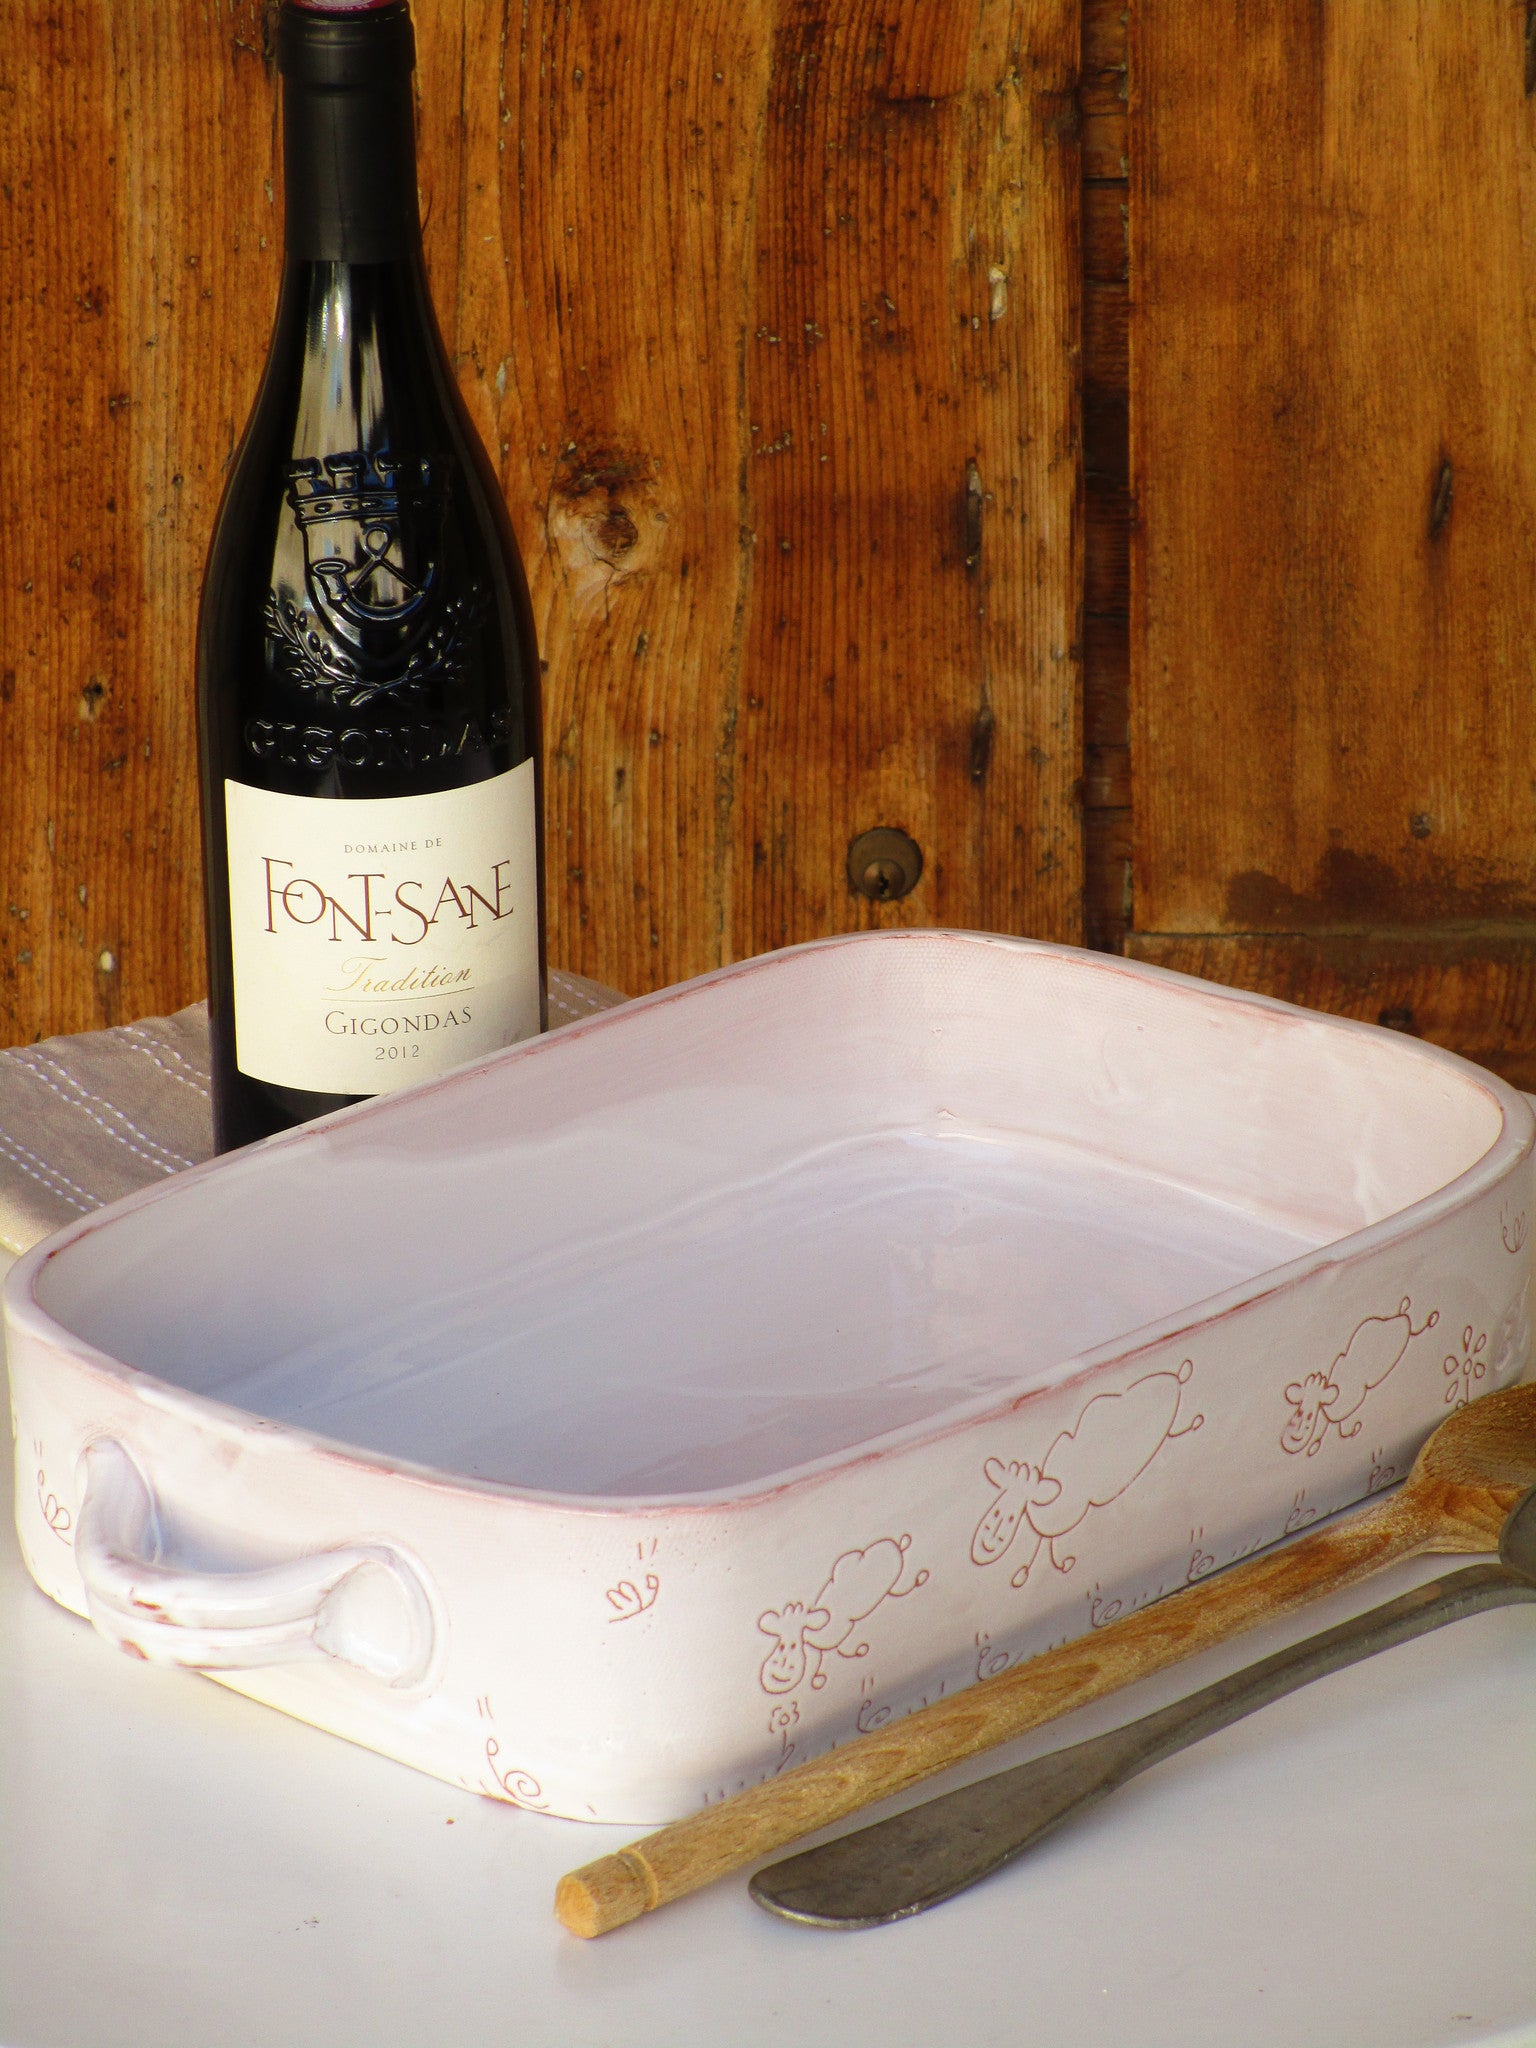 Rectangular baking dish - the French countryside